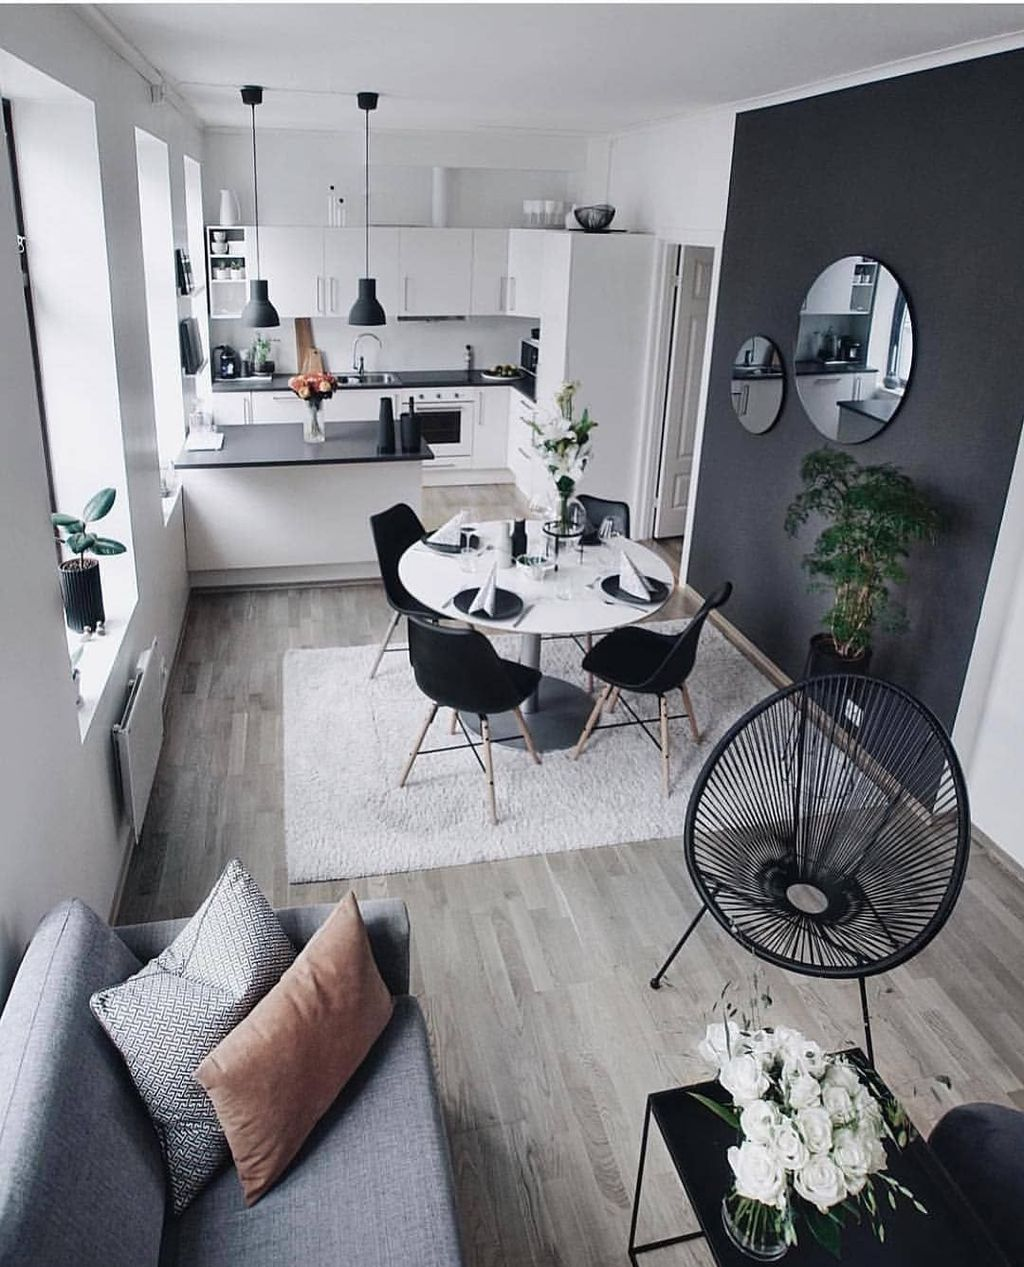 48 Inspiring Living Room Ideas For Small Space Homyhomee Interior Design Living Room Minimalist Home Decor Minimalist Home